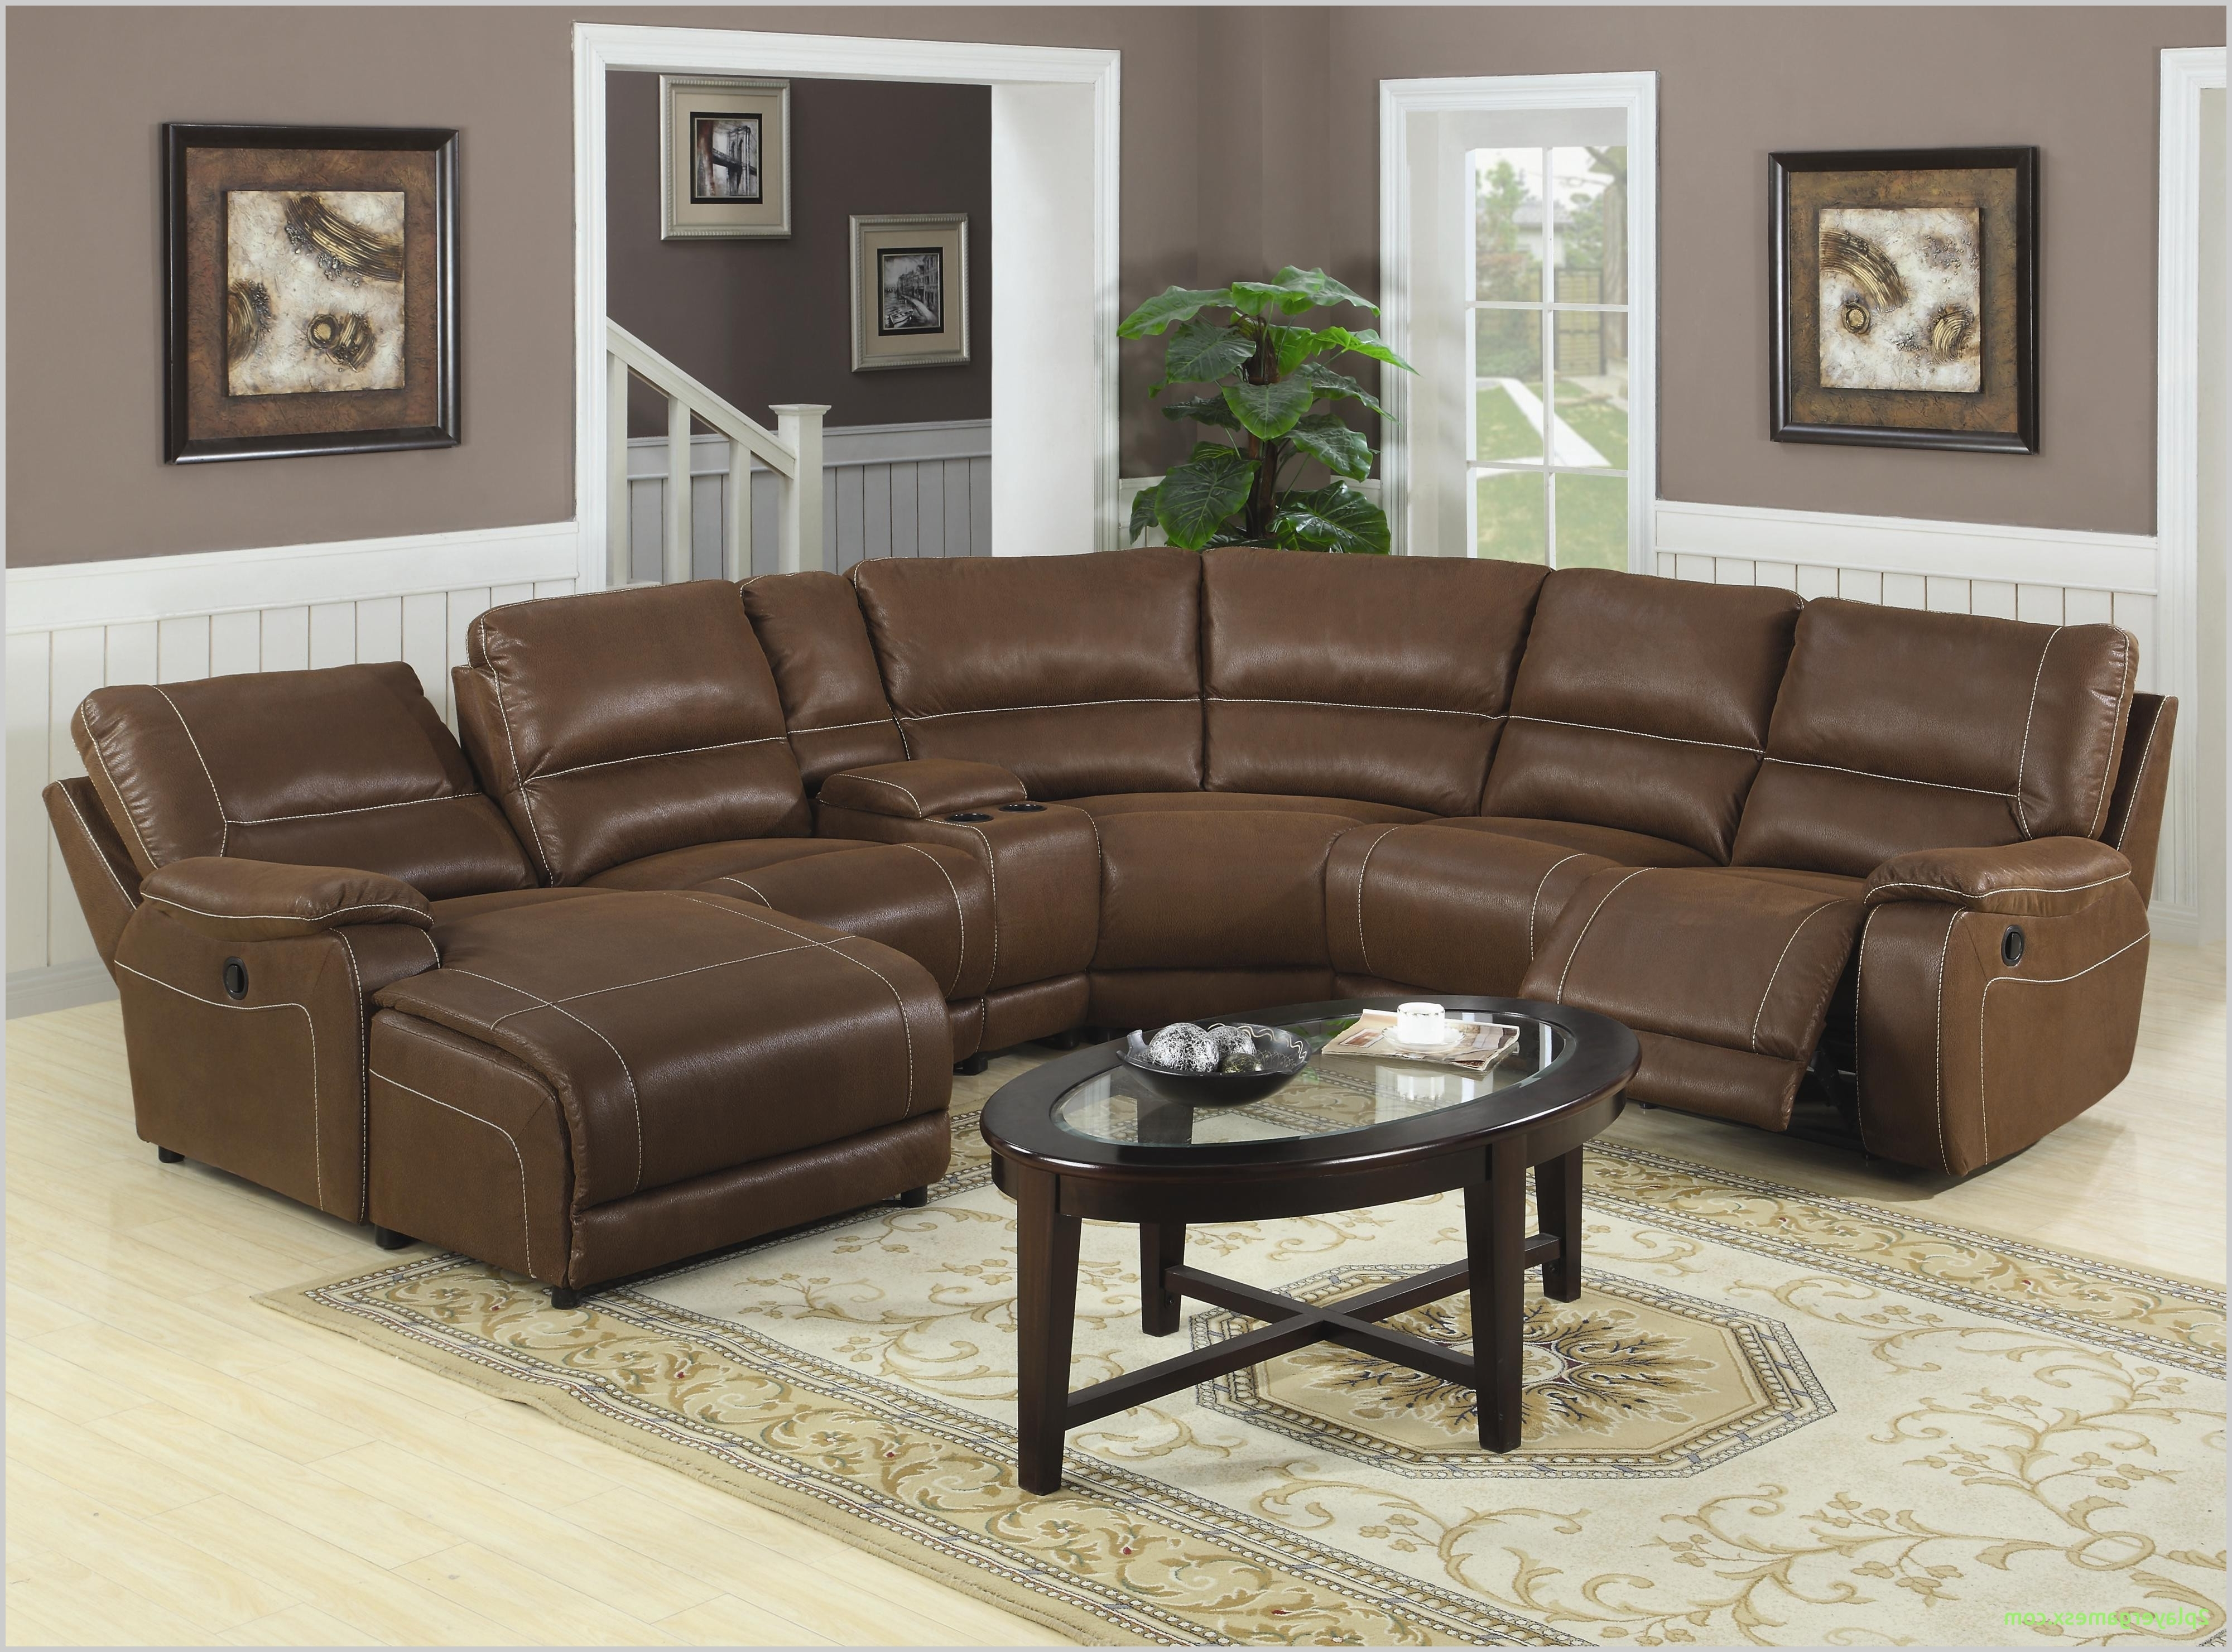 Sectional Sofas For Small Spaces With Recliners Regarding Recent Dual Purpose Furniture Small Spaces Leather Sofas For Apartments (View 9 of 15)